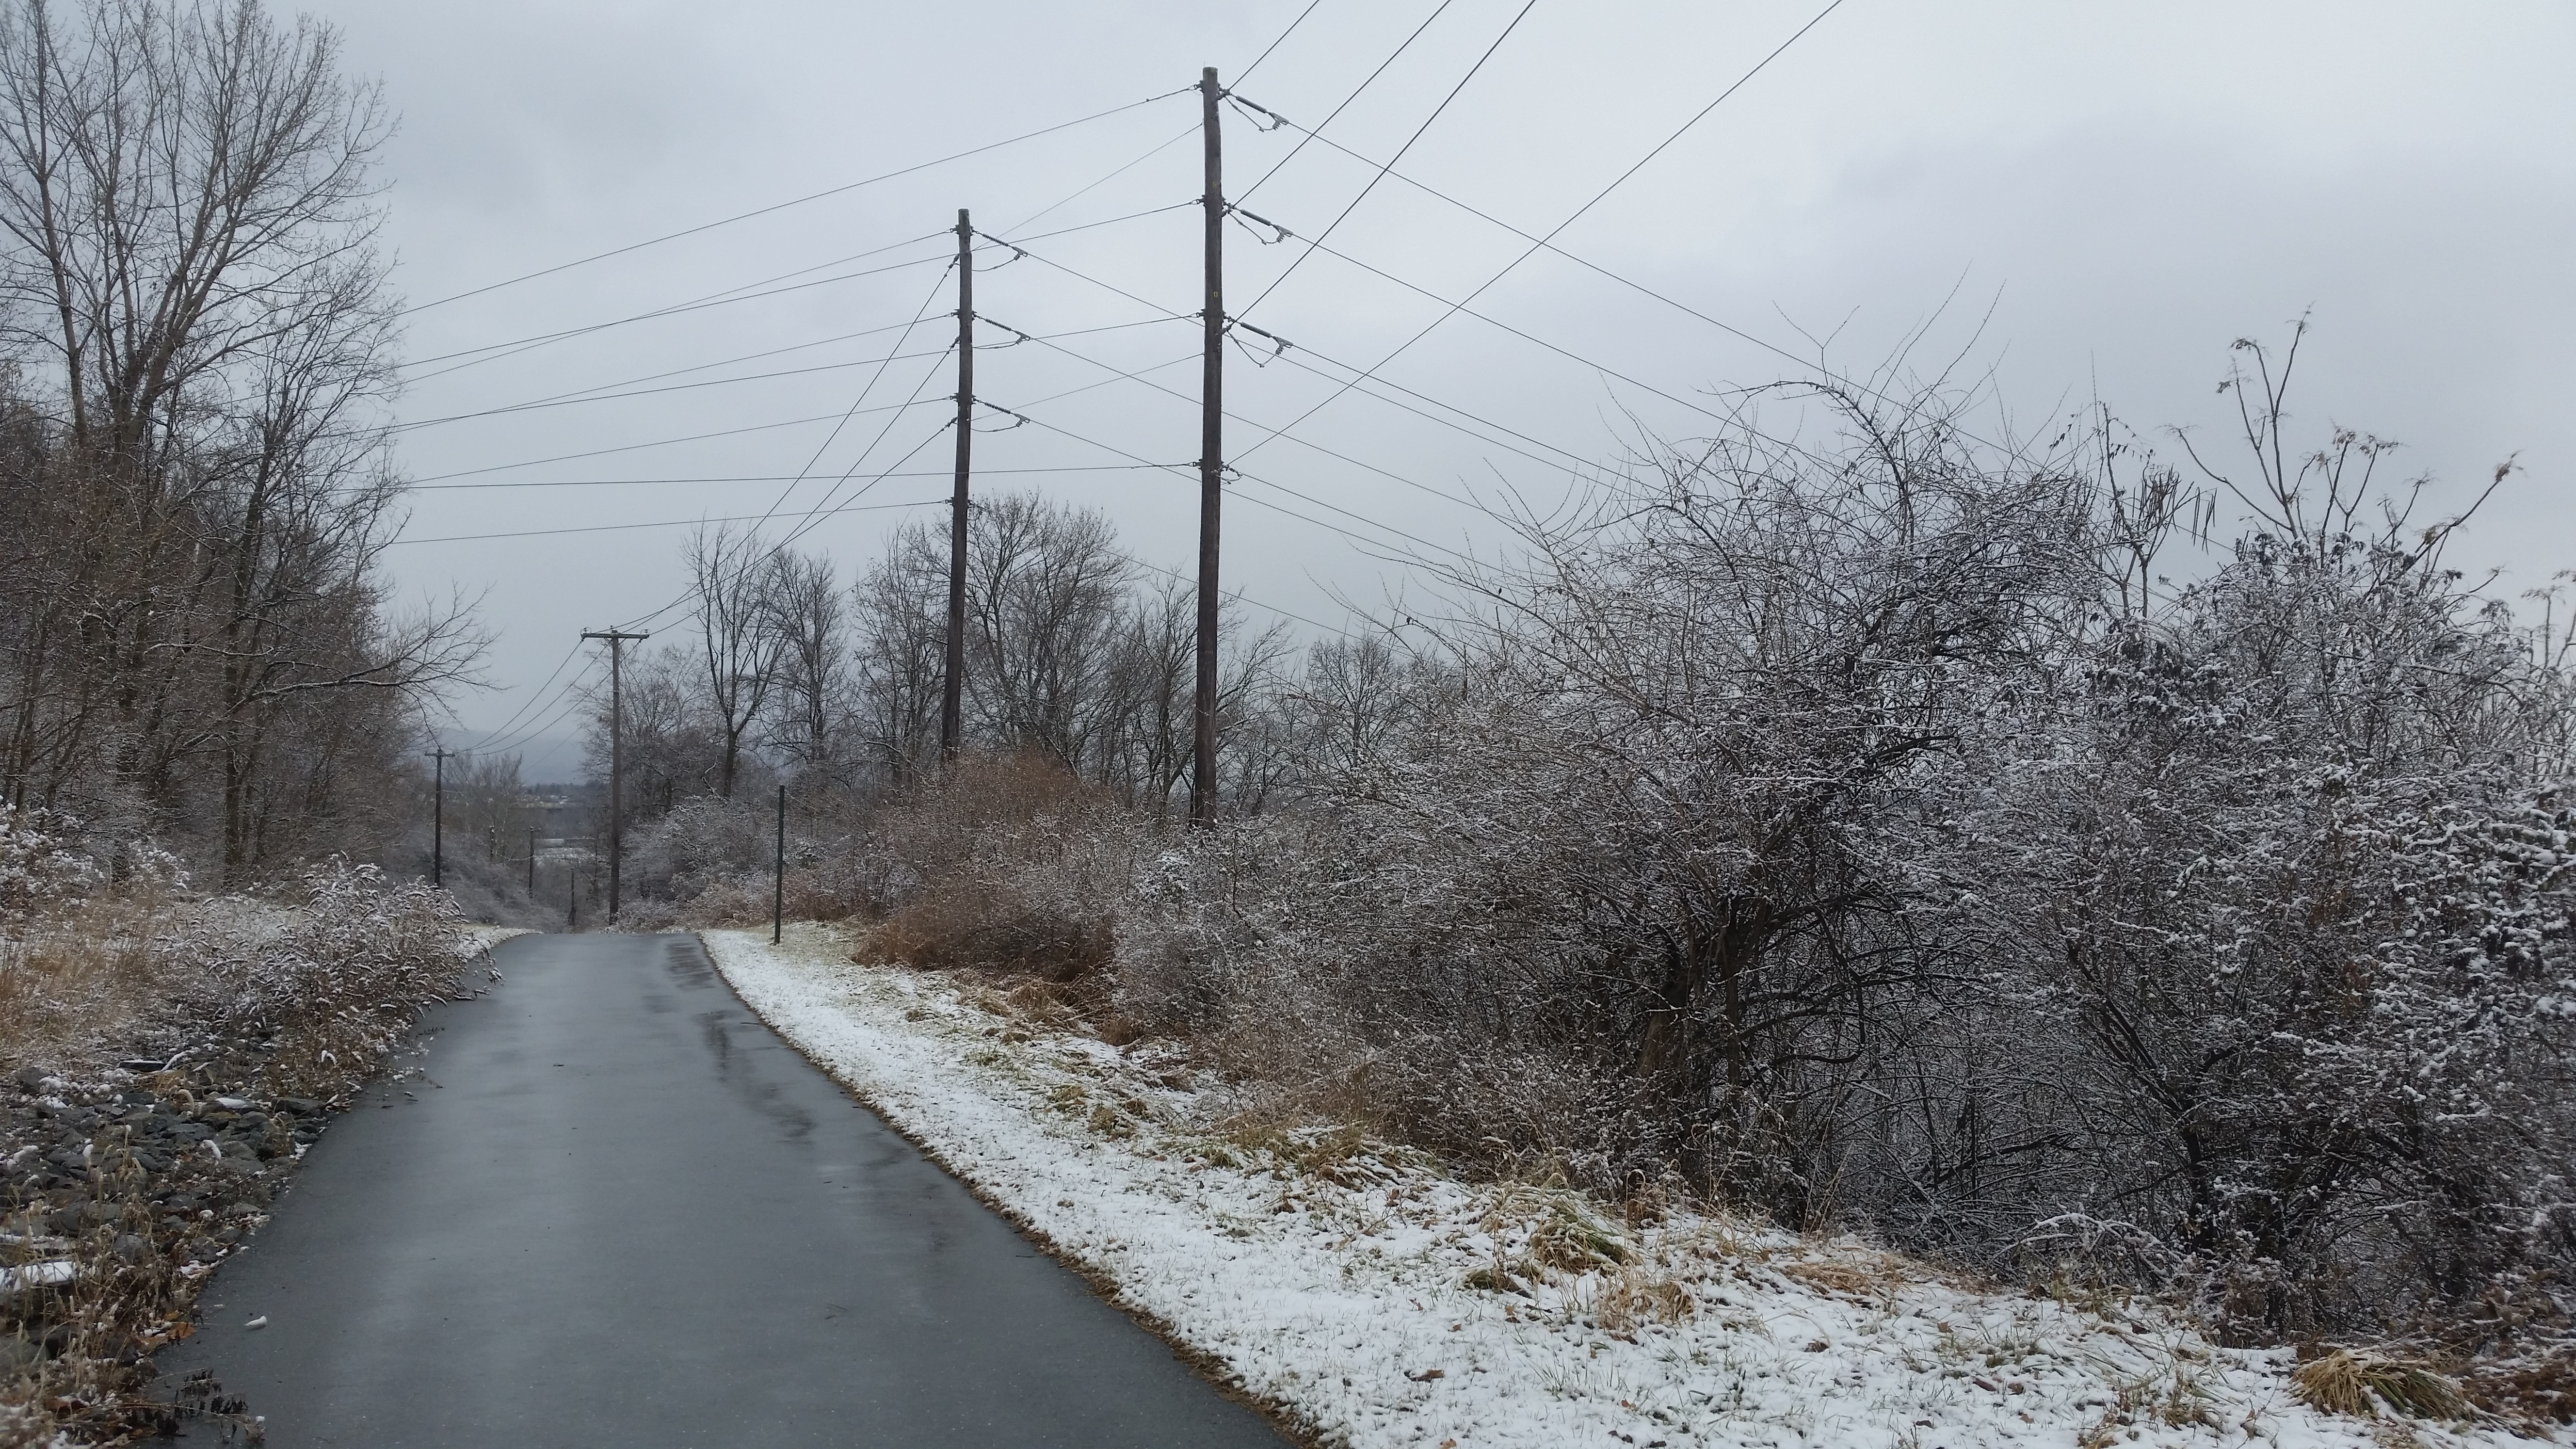 bike path, power lines and winter woods